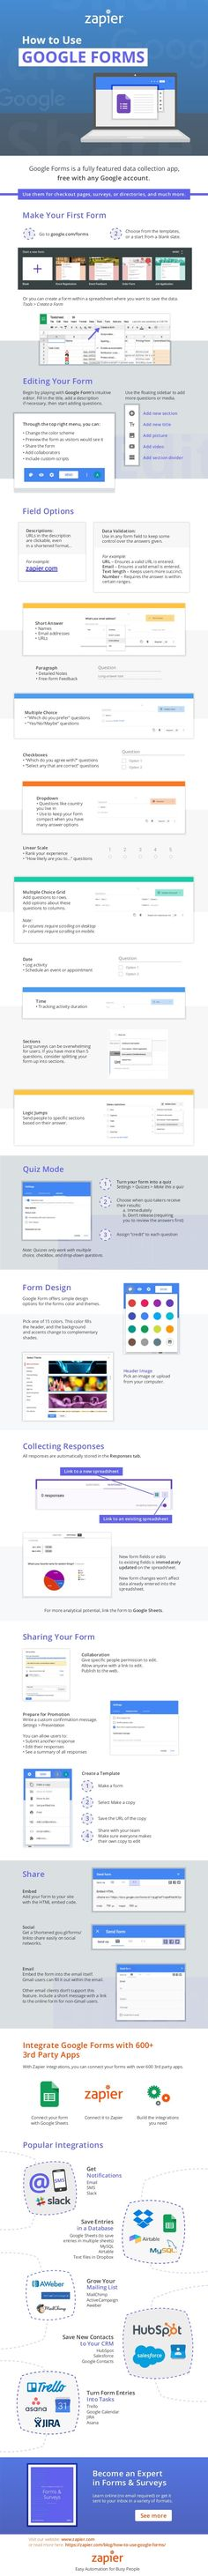 How to Use Google Forms #infographic